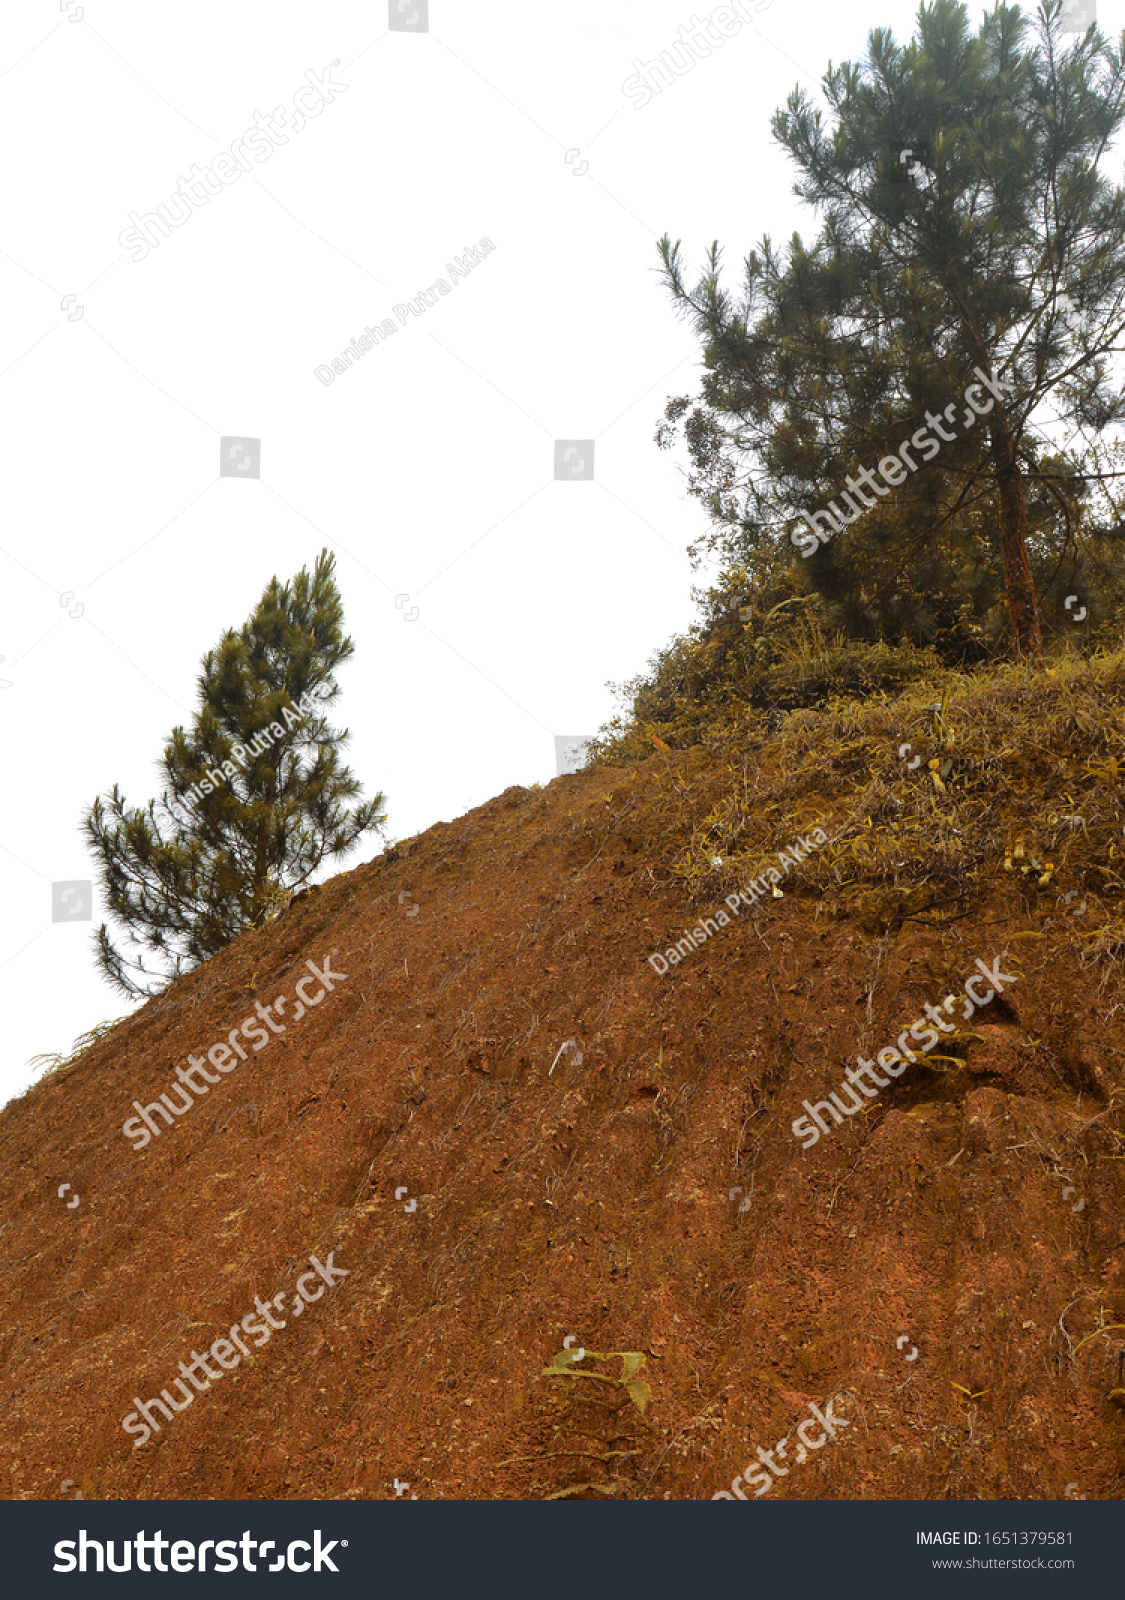 stock-photo-steep-cliffs-eroded-dirt-tra